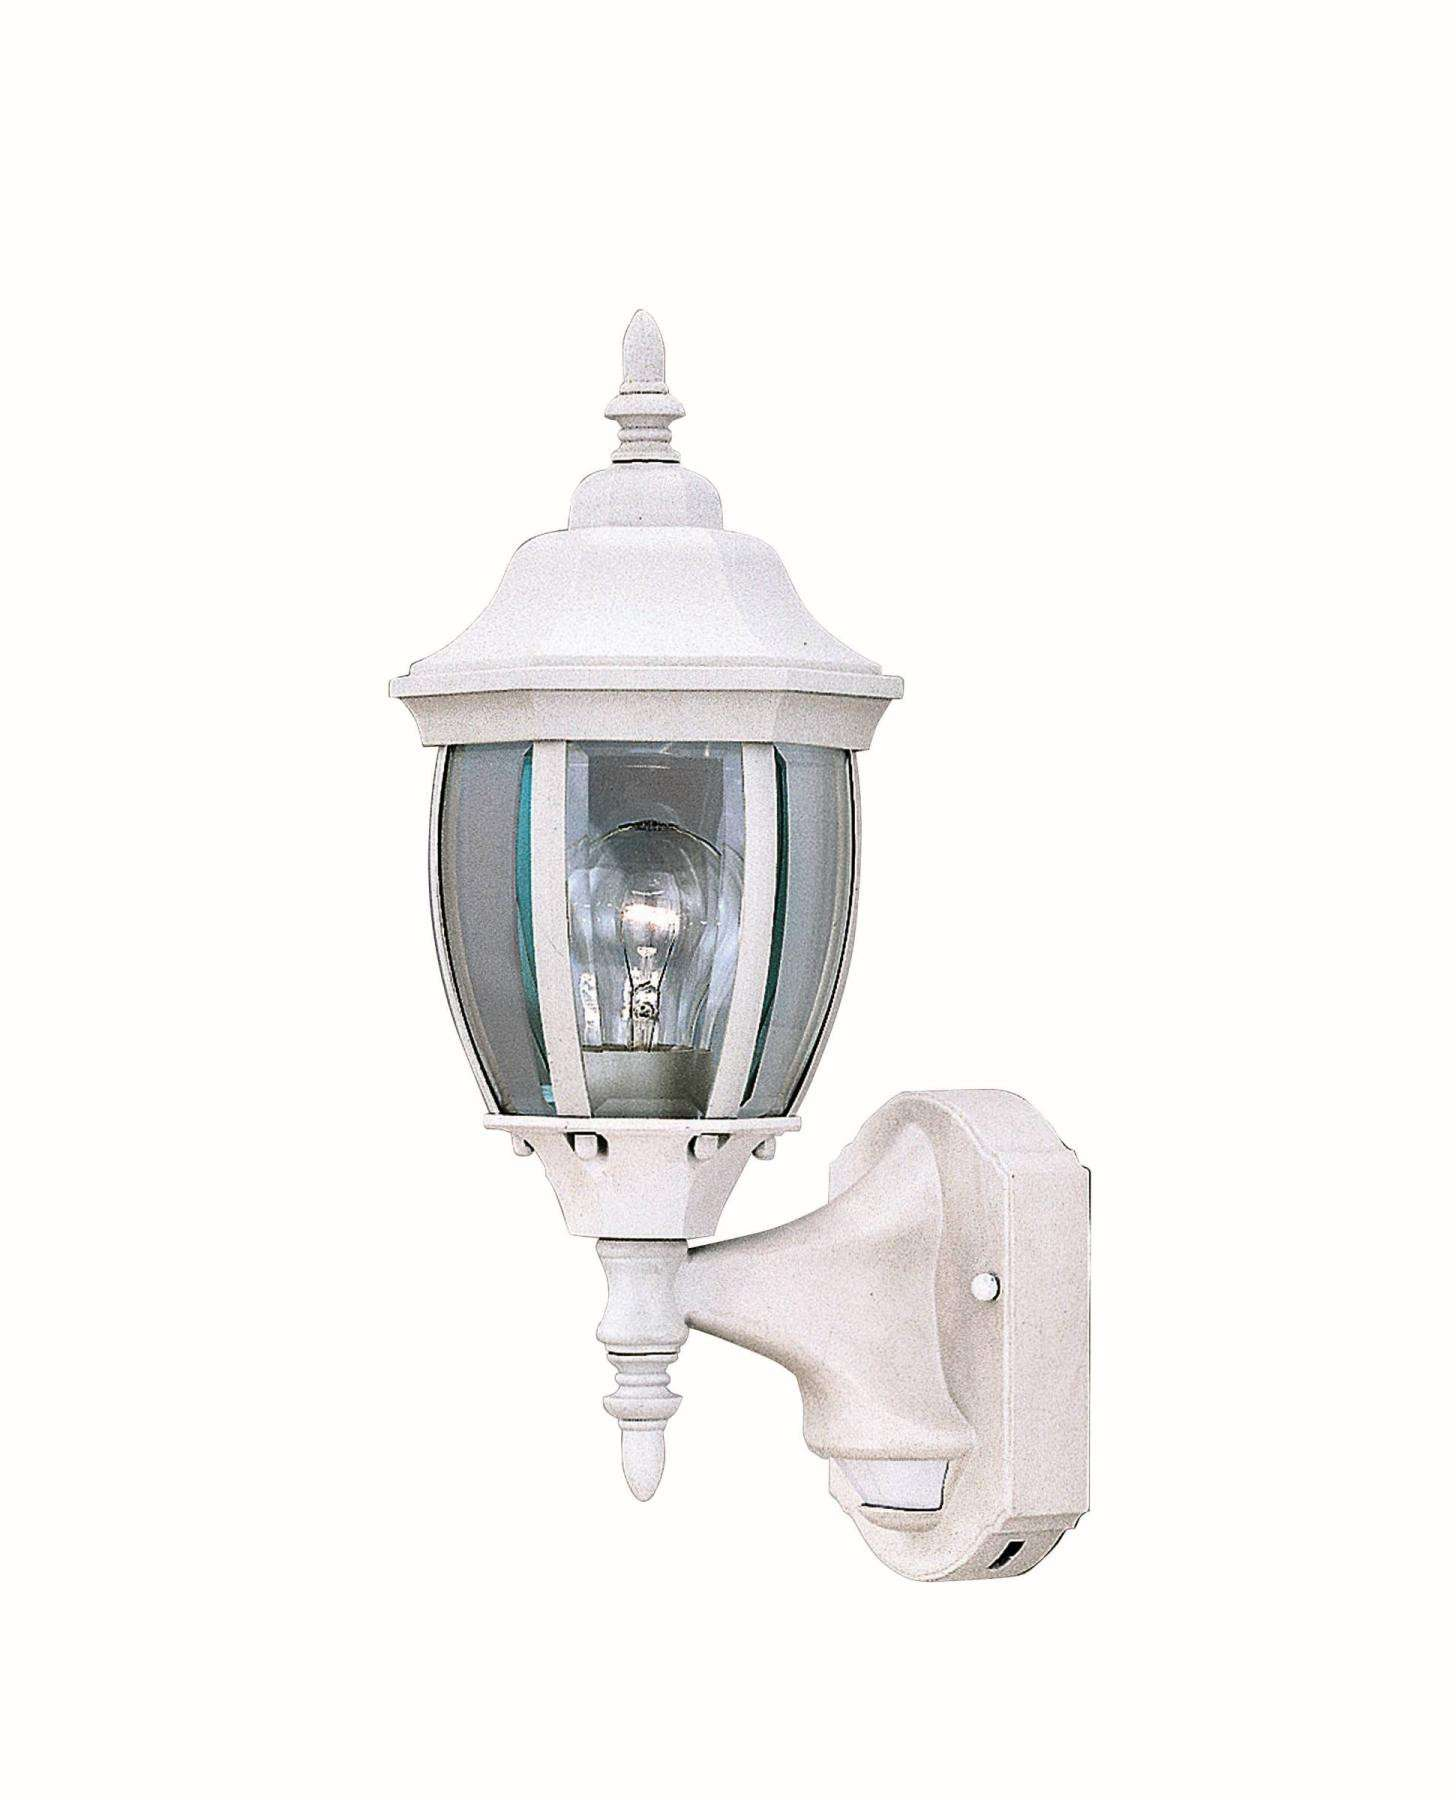 "Designers Fountain 2420MD-WH Tiverton 6 1/2"" Wall Lantern MD in White finish with Clear glass"